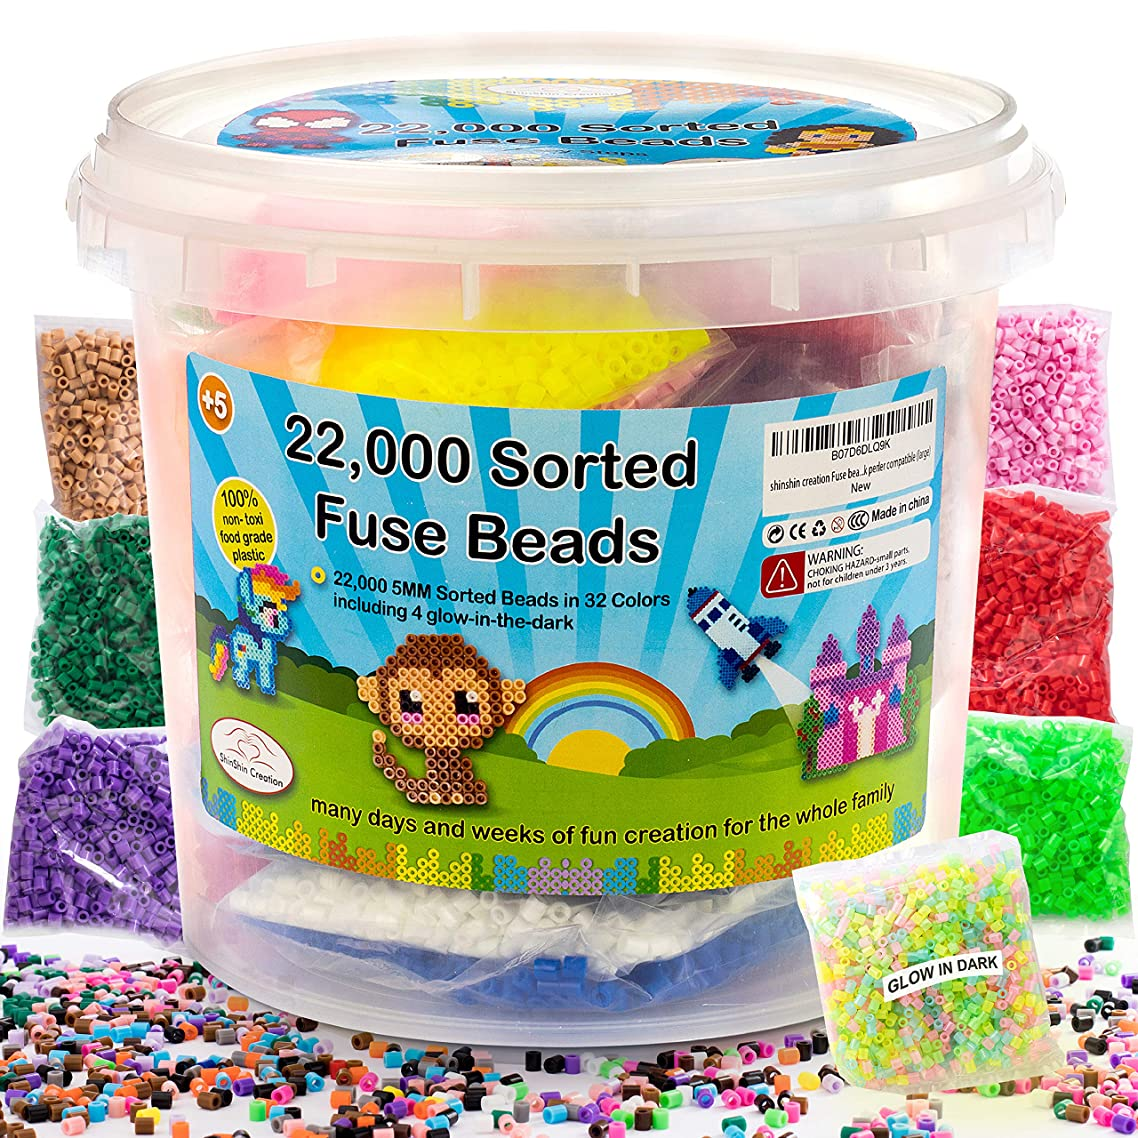 shinshin creation 22,000 Pre - Sorted Fuse Melty Beads Bucket Size 5mm 32 Colors Including Glow in The Dark Perler Compatible for Boy or Girl